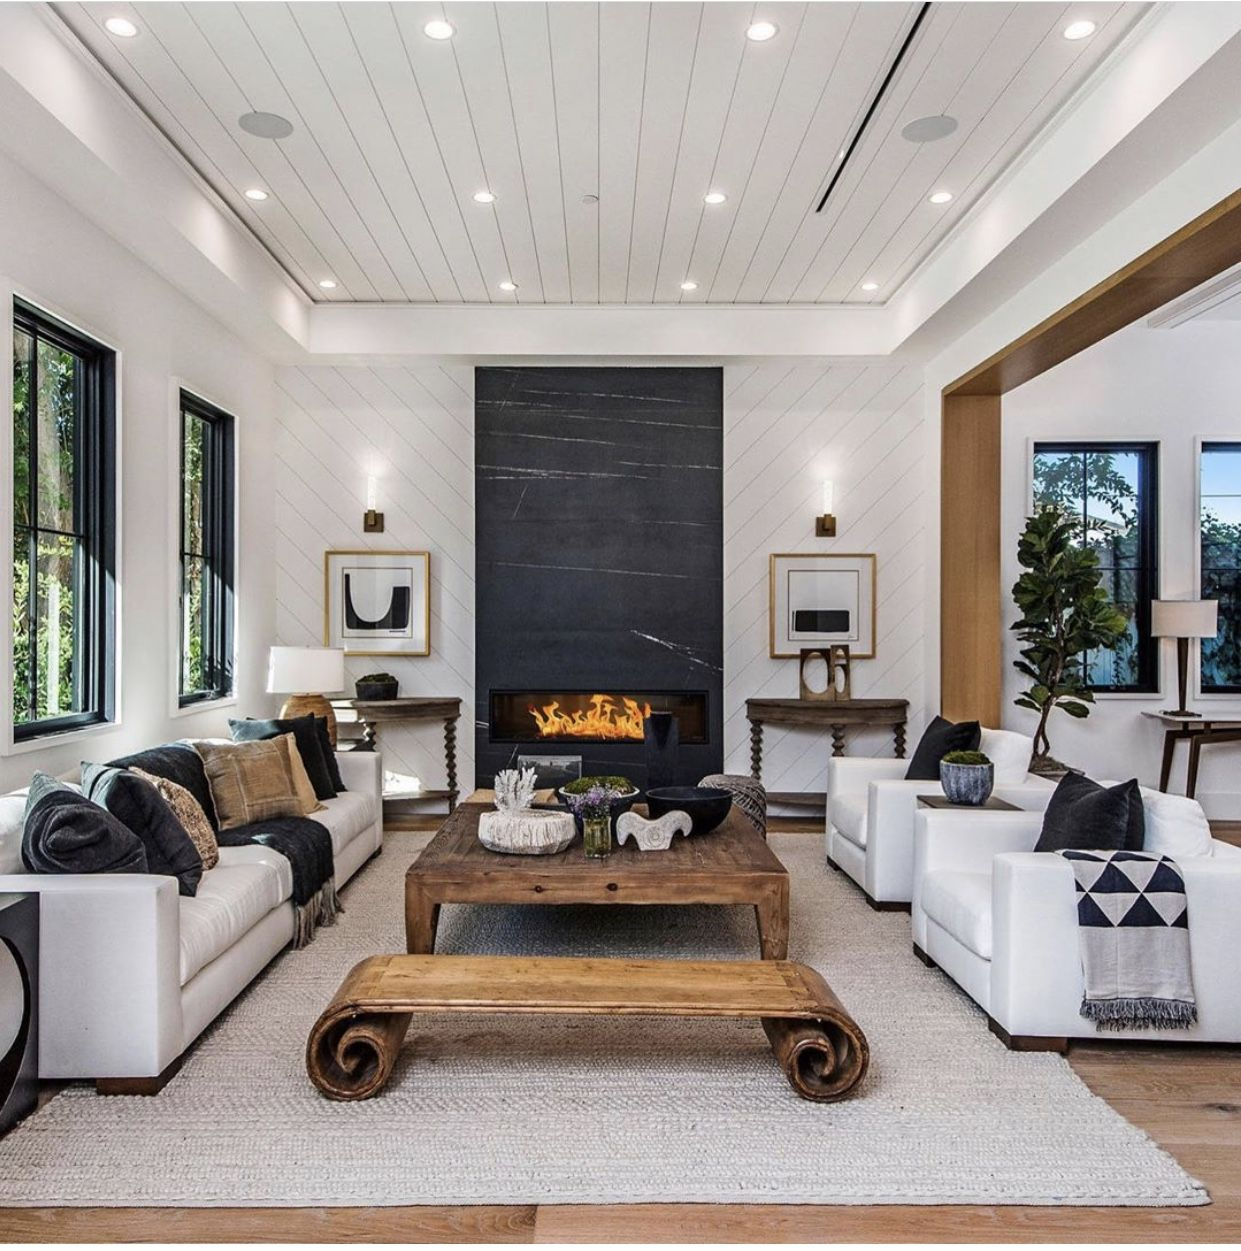 Interior Design Home Staging: Pin By J S On Interior Design